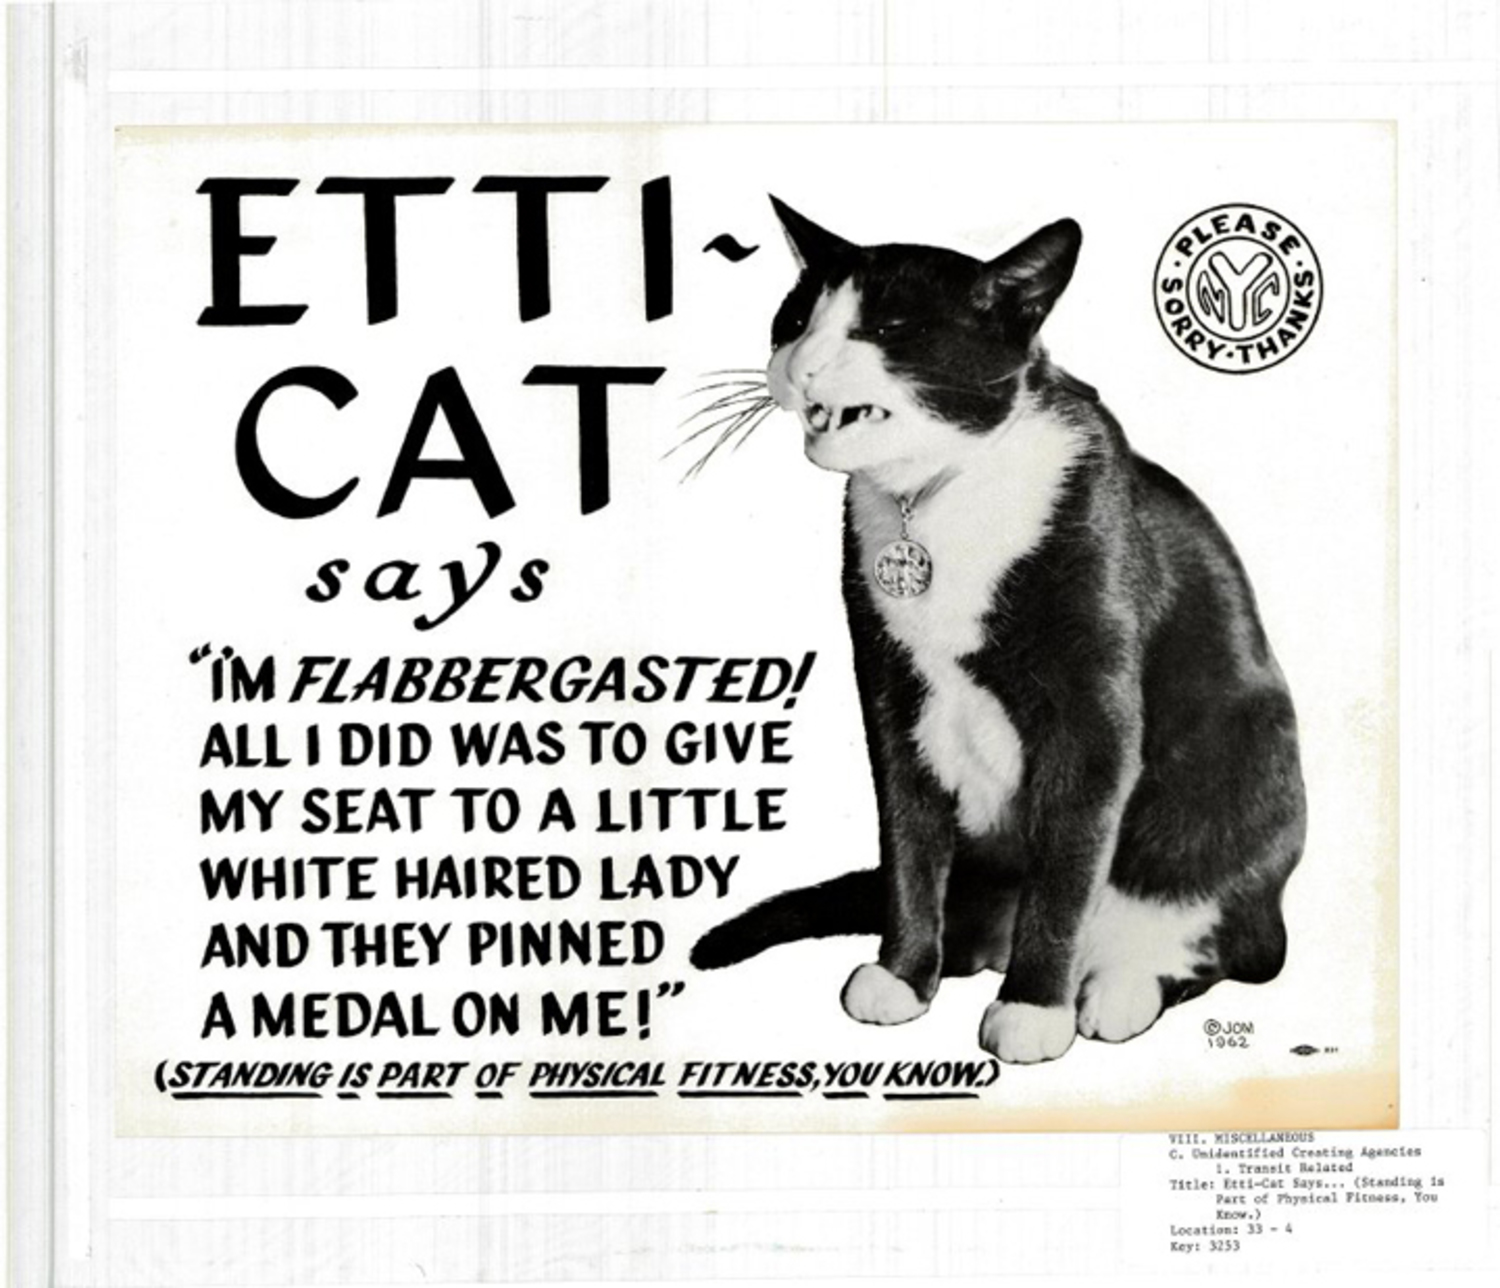 """Etti-Cat says … Standing is Part of Physical Fitness, you know"" (1962) (courtesy Poster Collection, New York Transit Museum)"